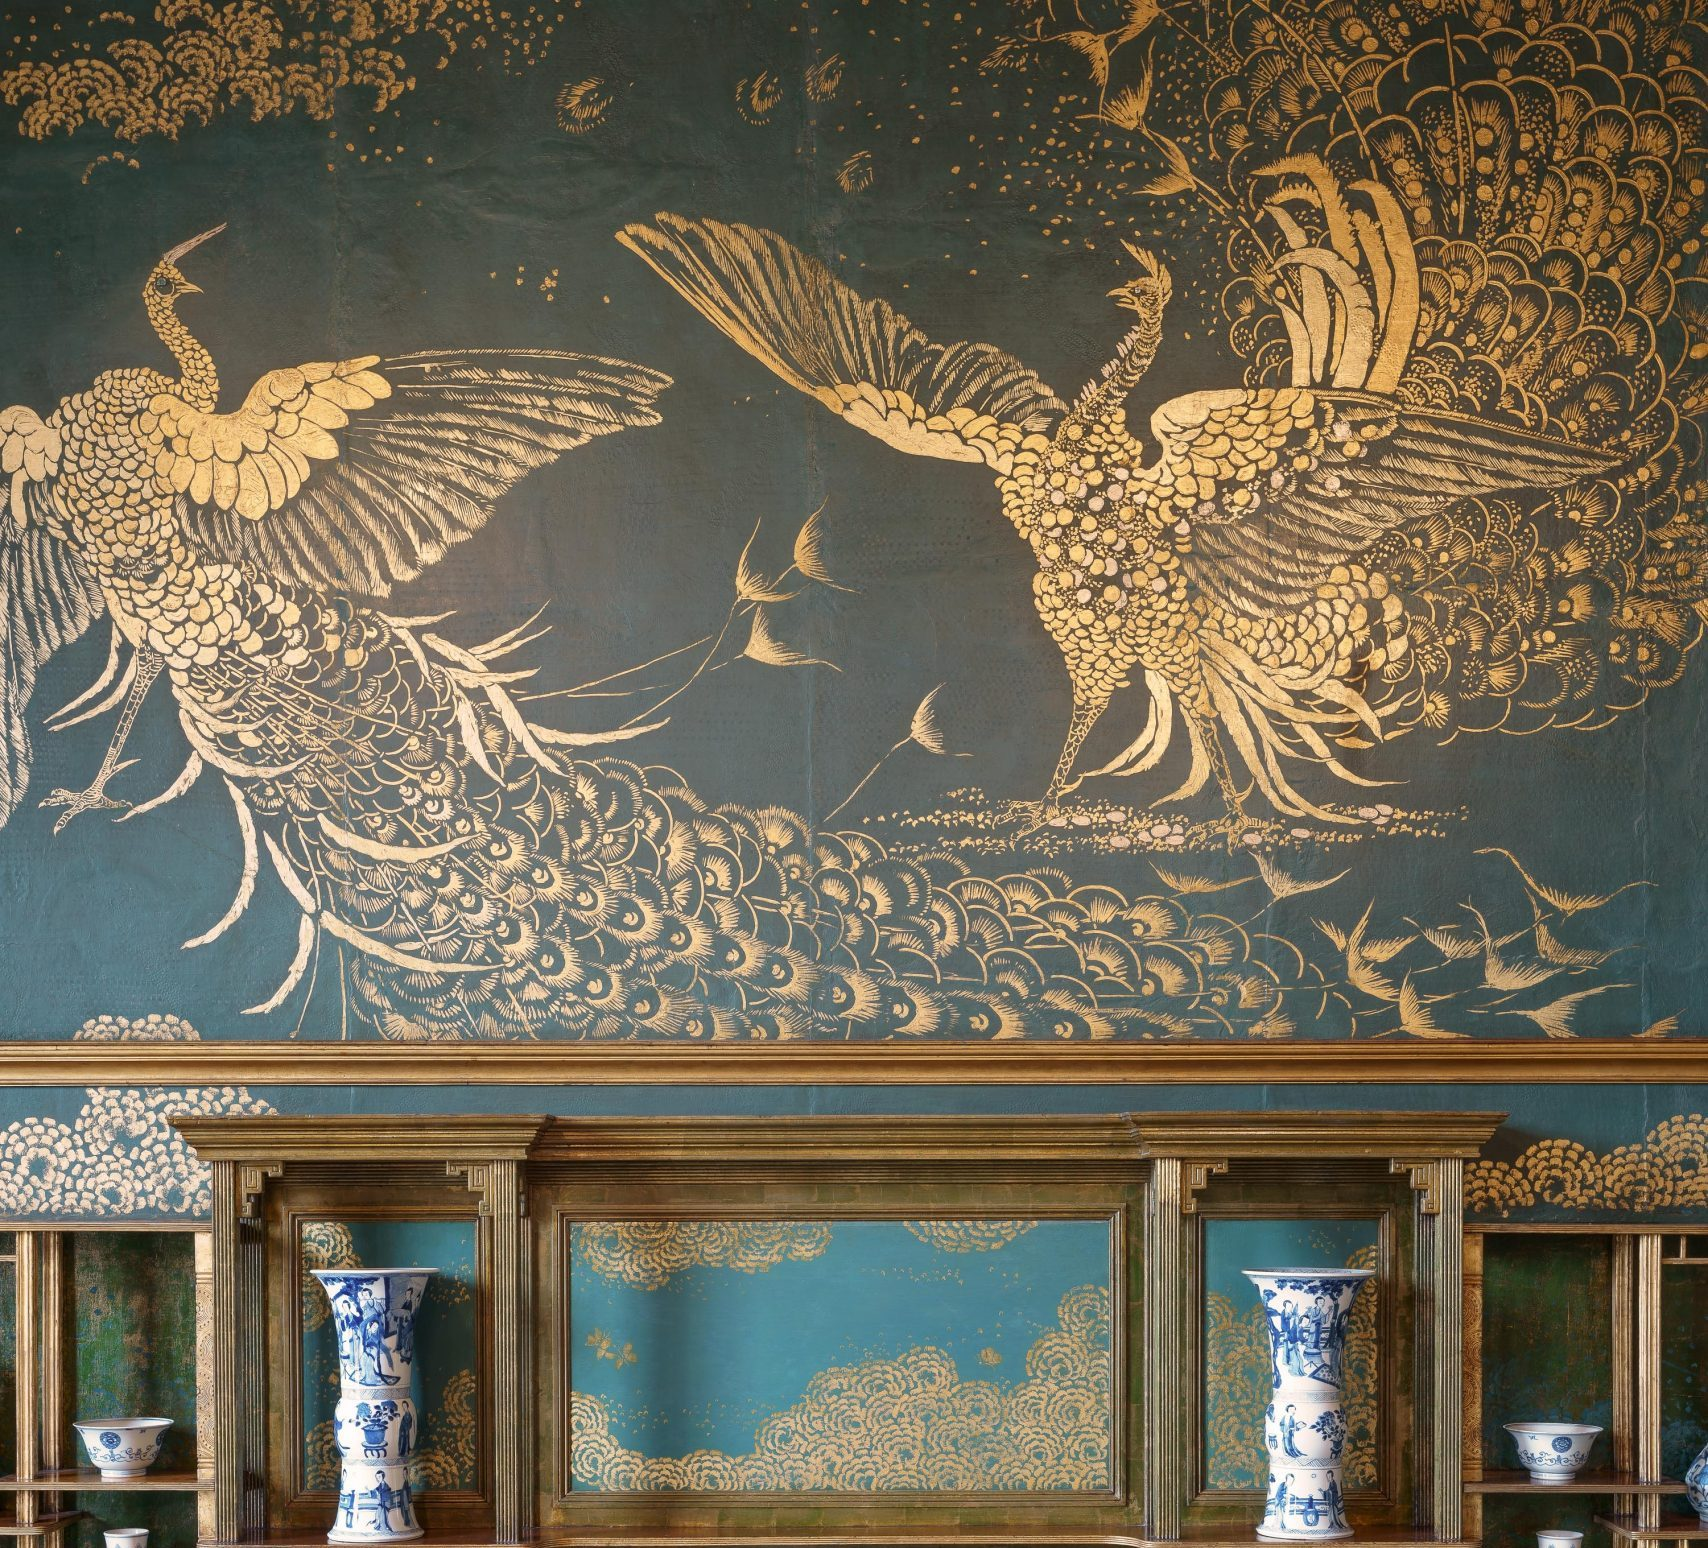 Peacock mural in the Peacock Room at the Freer Gallery of Art, the shelves are lined with Chinese blue and white porcelain